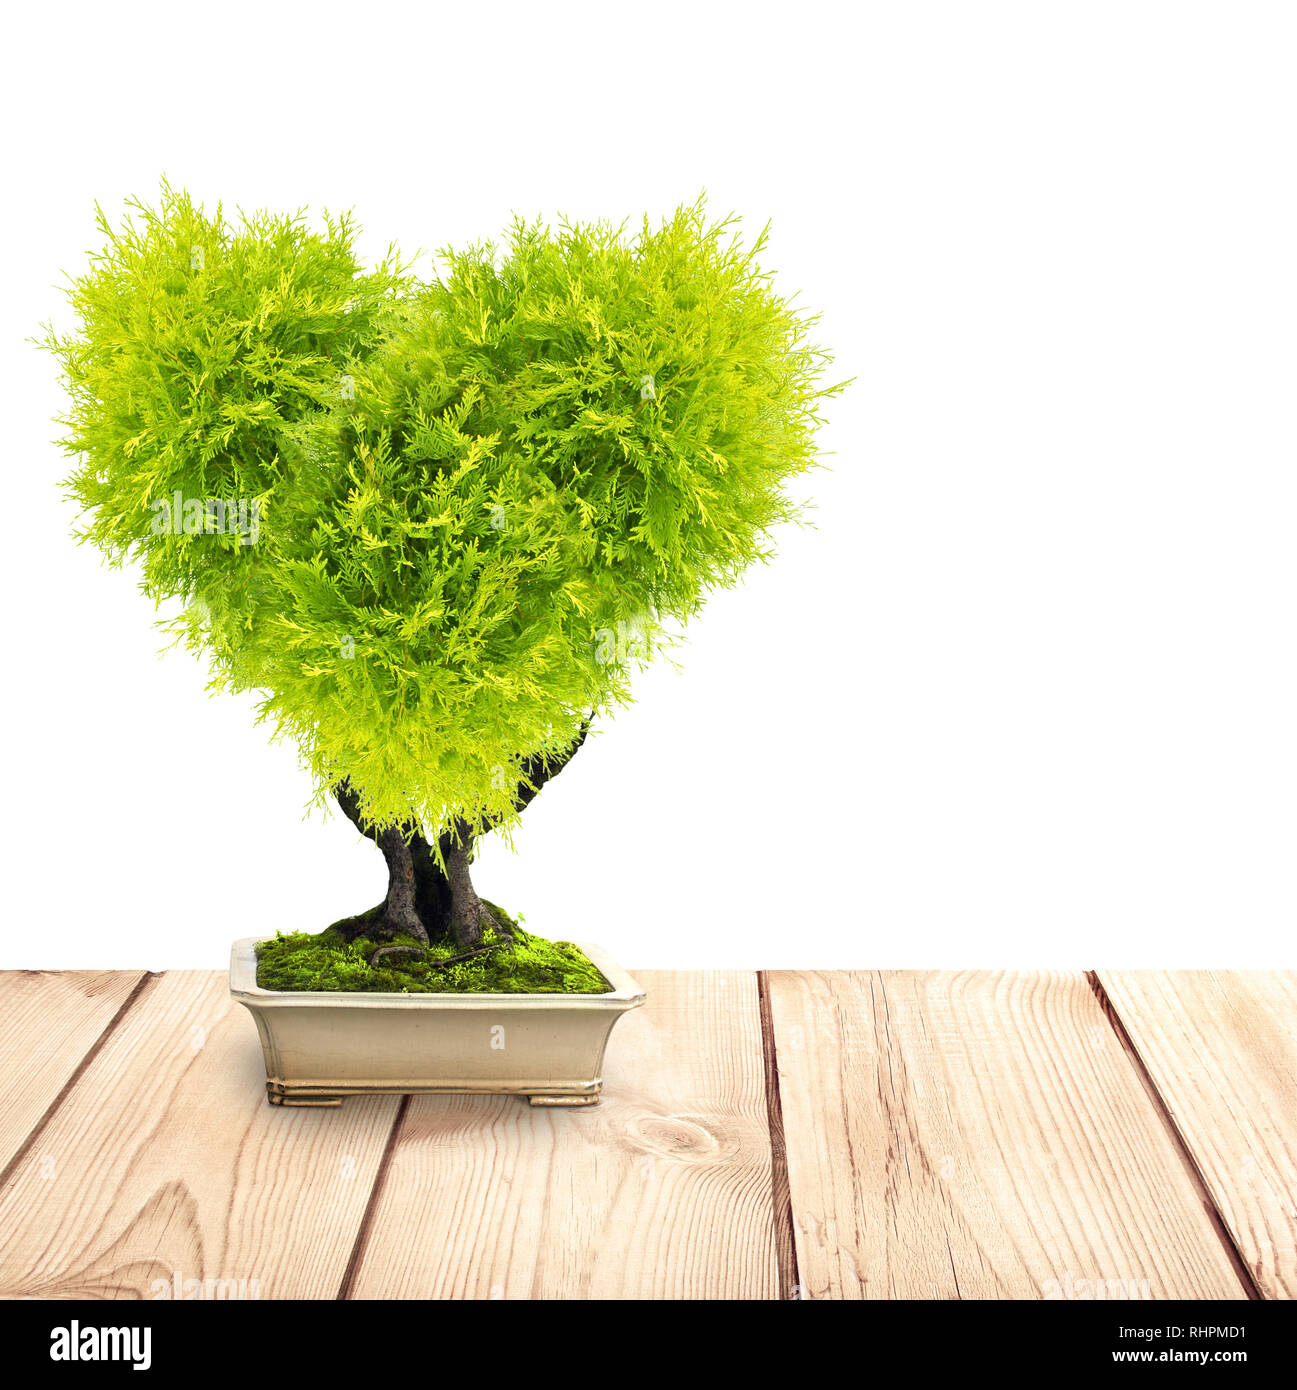 Eco Concept Heart Shaped Tree In Flower Pot On Old Wooden Deck